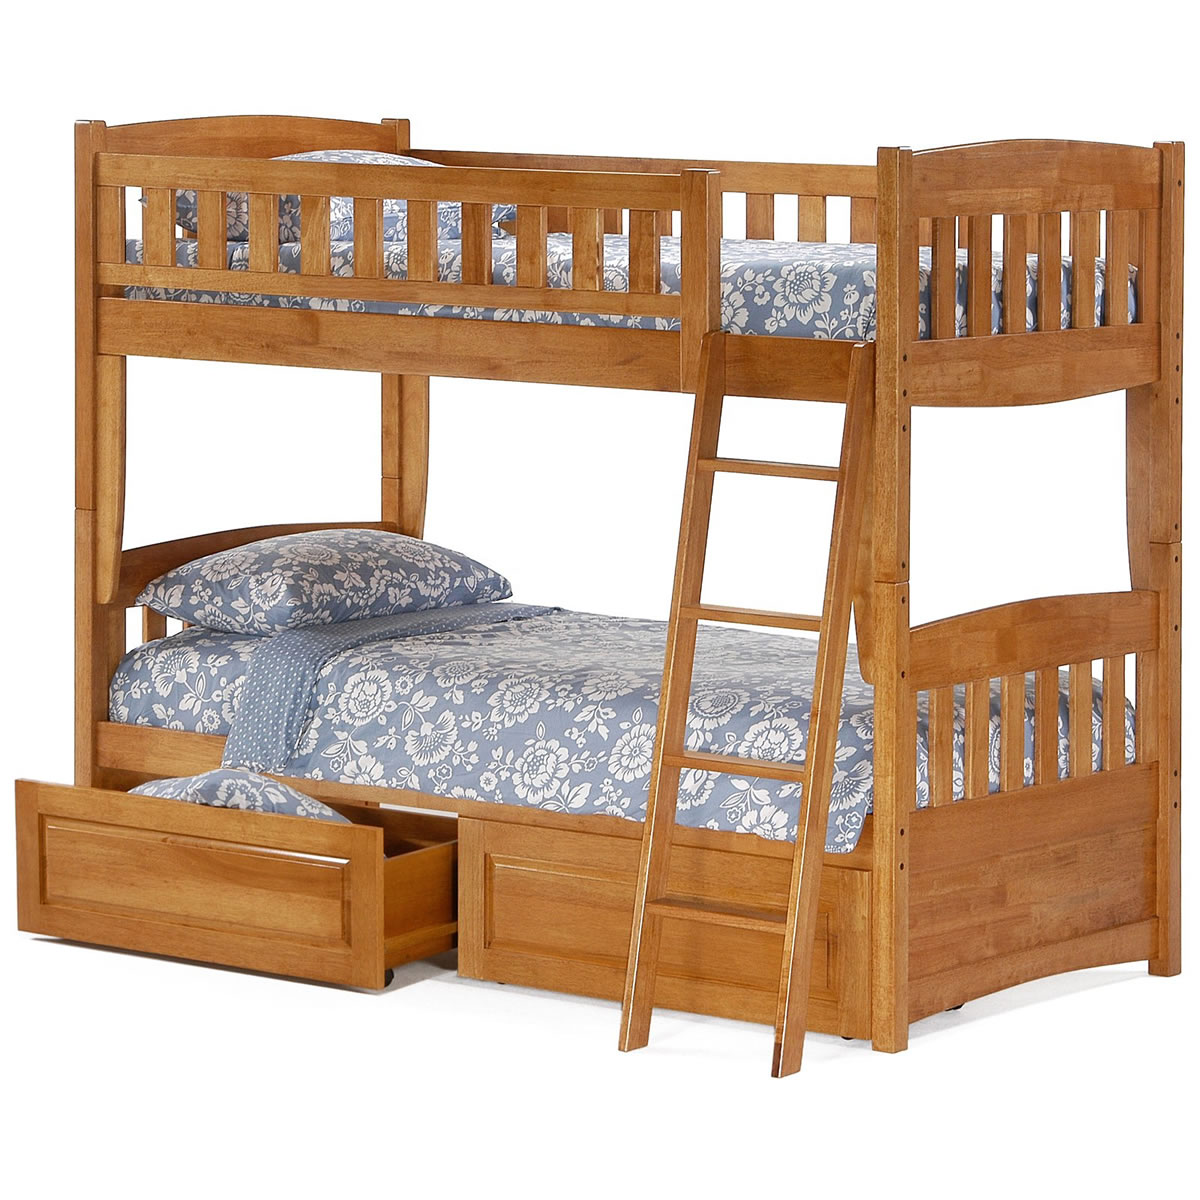 Sturdy bunk beds for adults homesfeed for Wooden bunkbeds